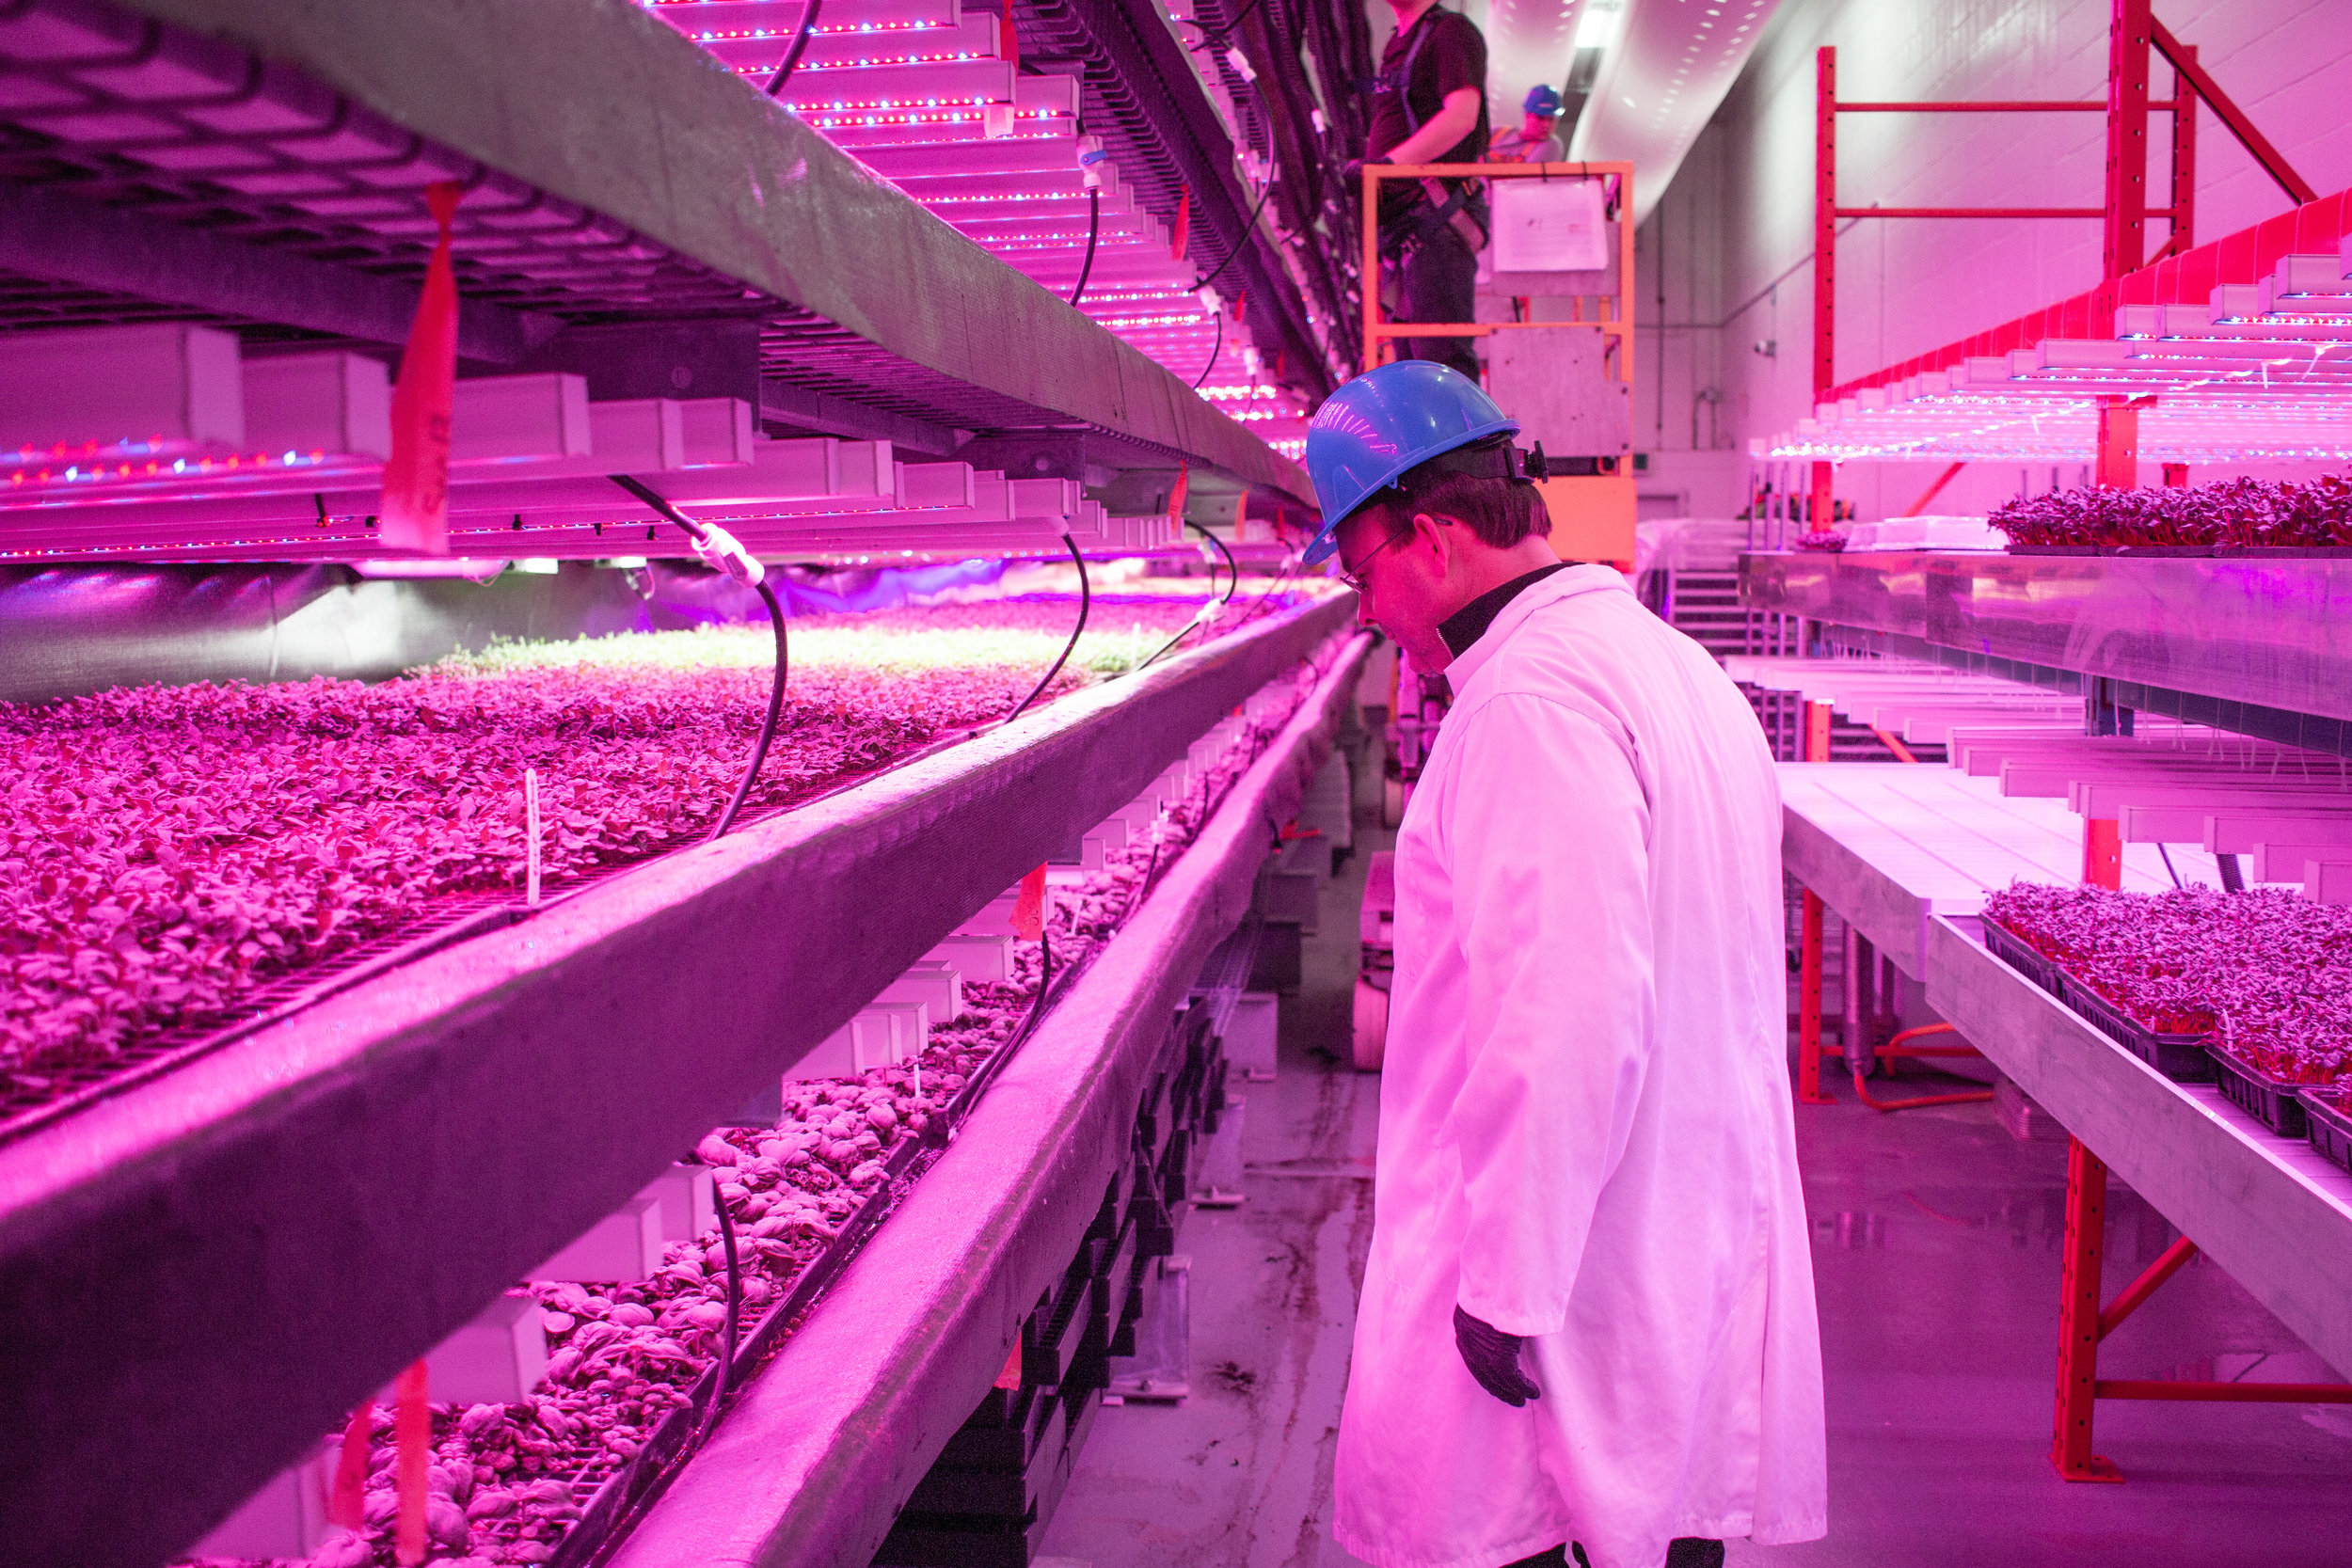 GoodLeaf Founder Gregg Curwin inspecting plants growing in GoodLeaf's pilot R&D facility in Bible Hill, Nova Scotia. (Early 2018)